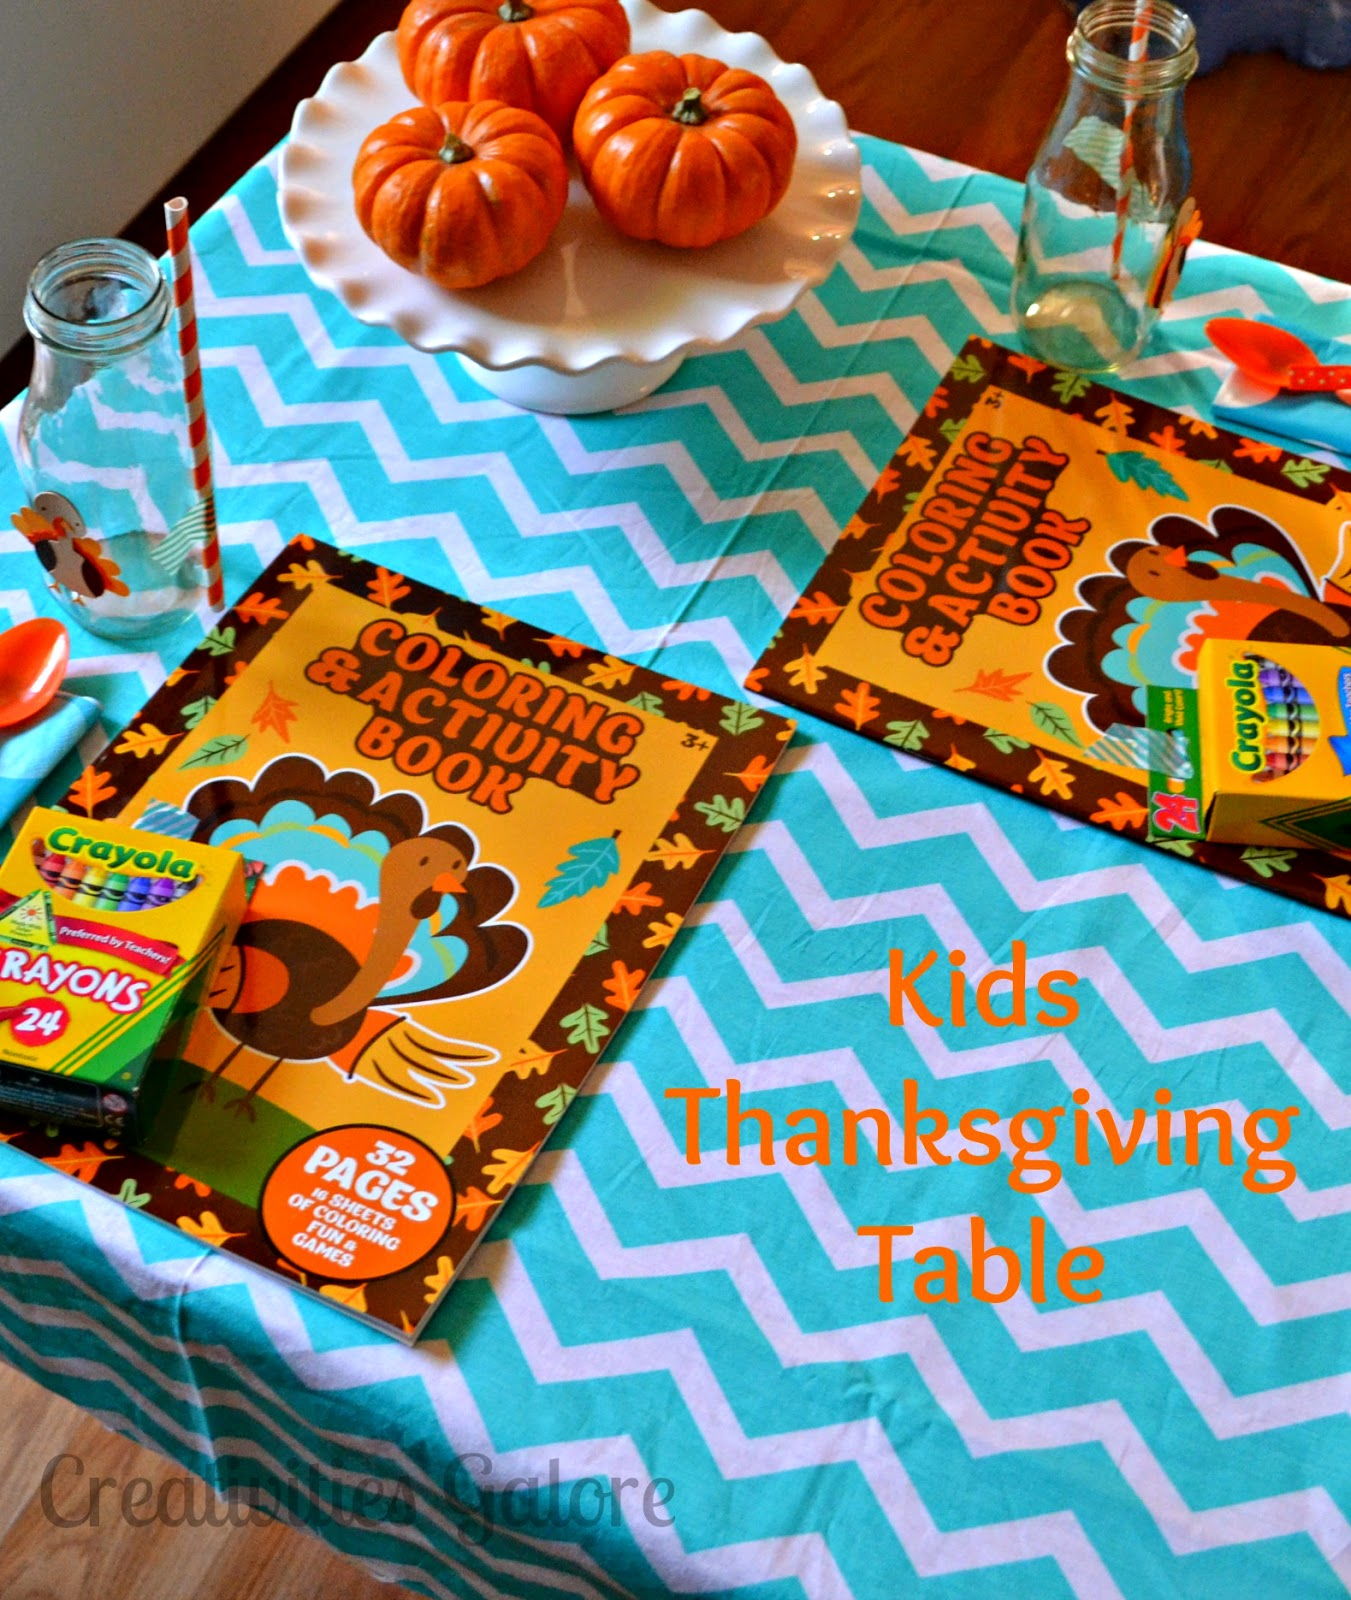 Creativities Galore: Kids Thanksgiving Table